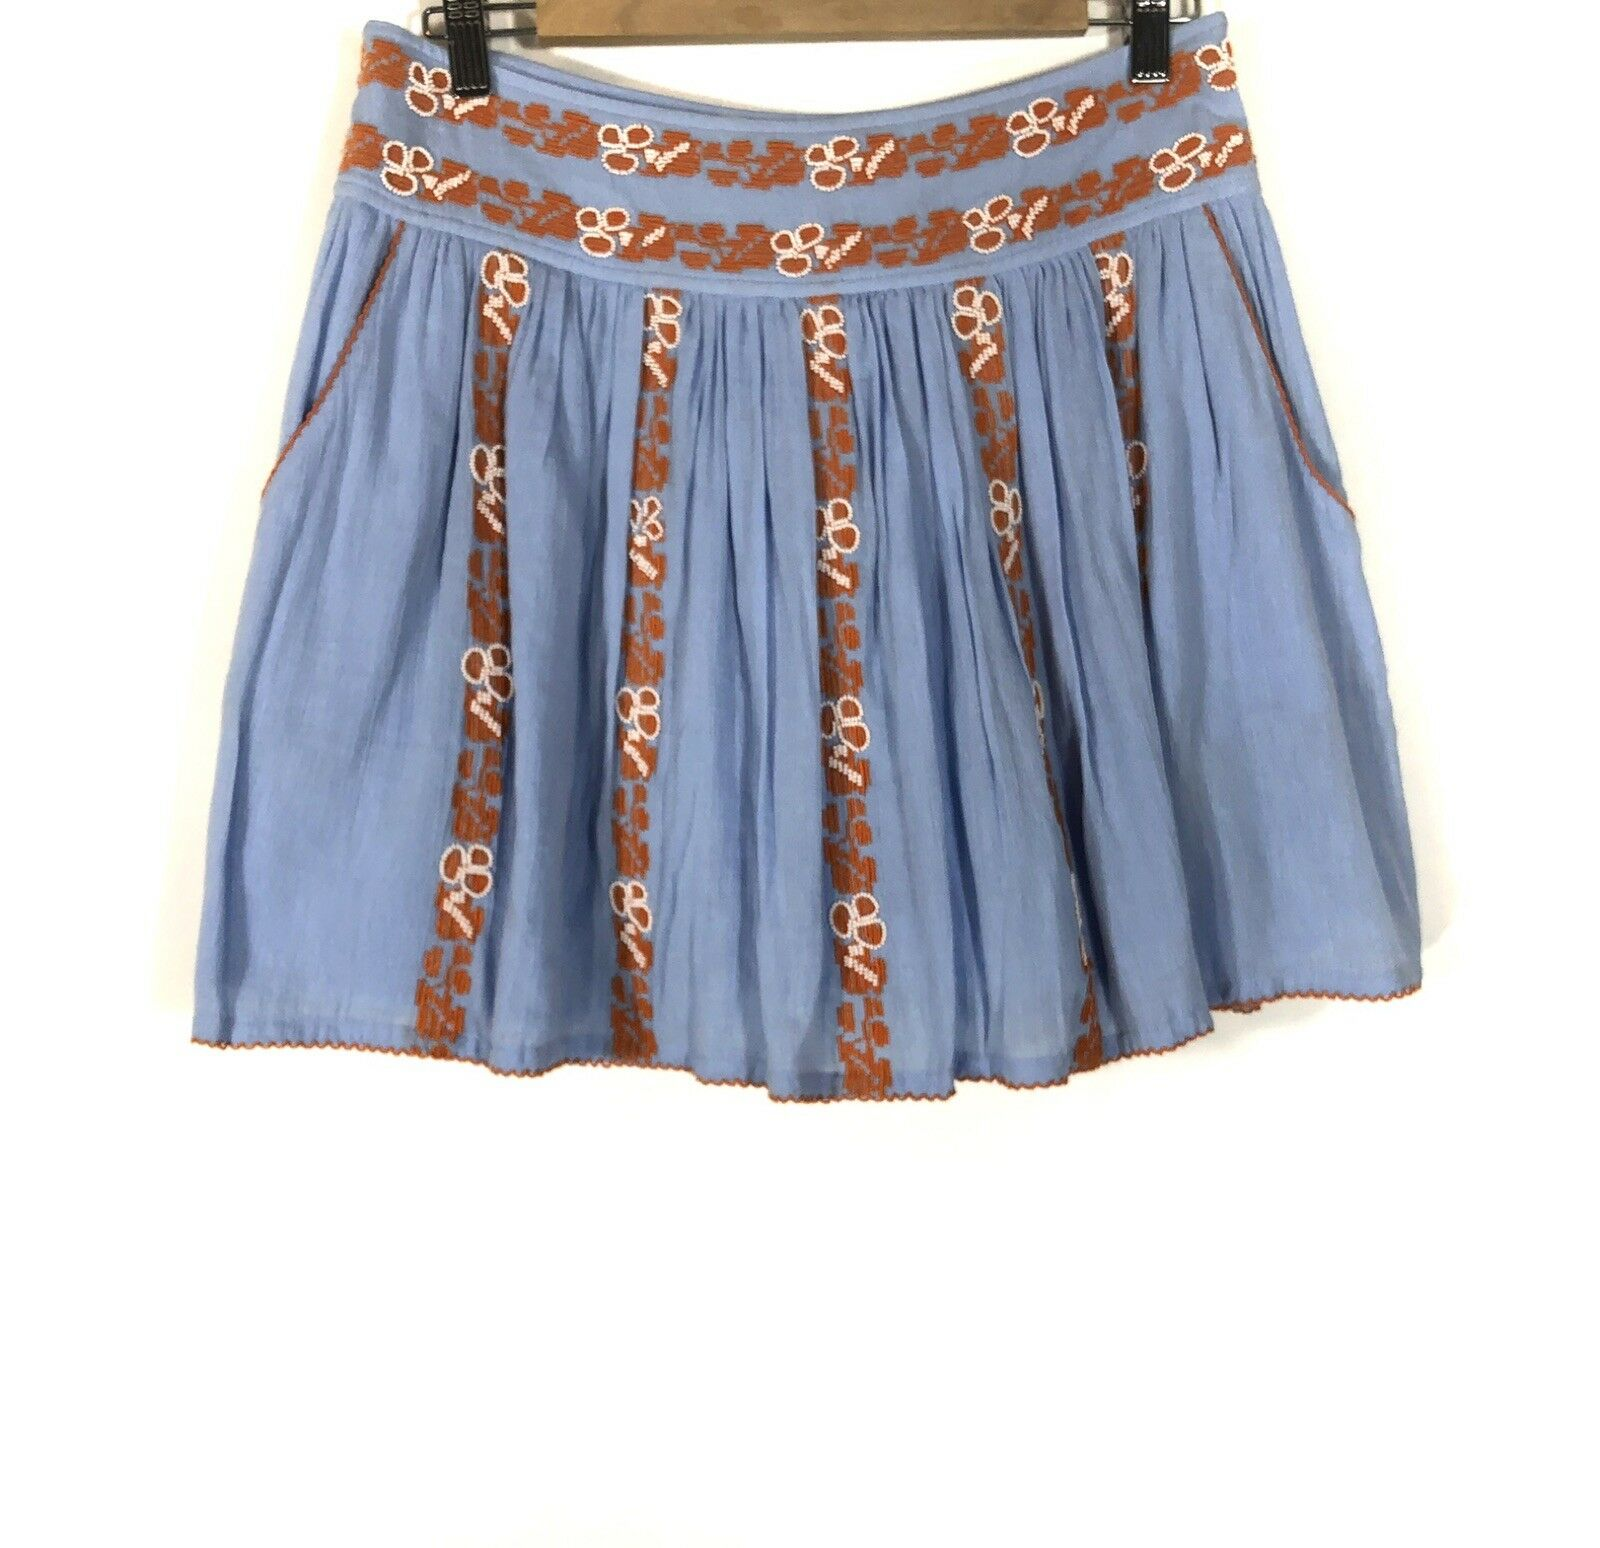 Tory Burch Women's Alexandria bluee Embellished Every Day Mini Skirt  size 6